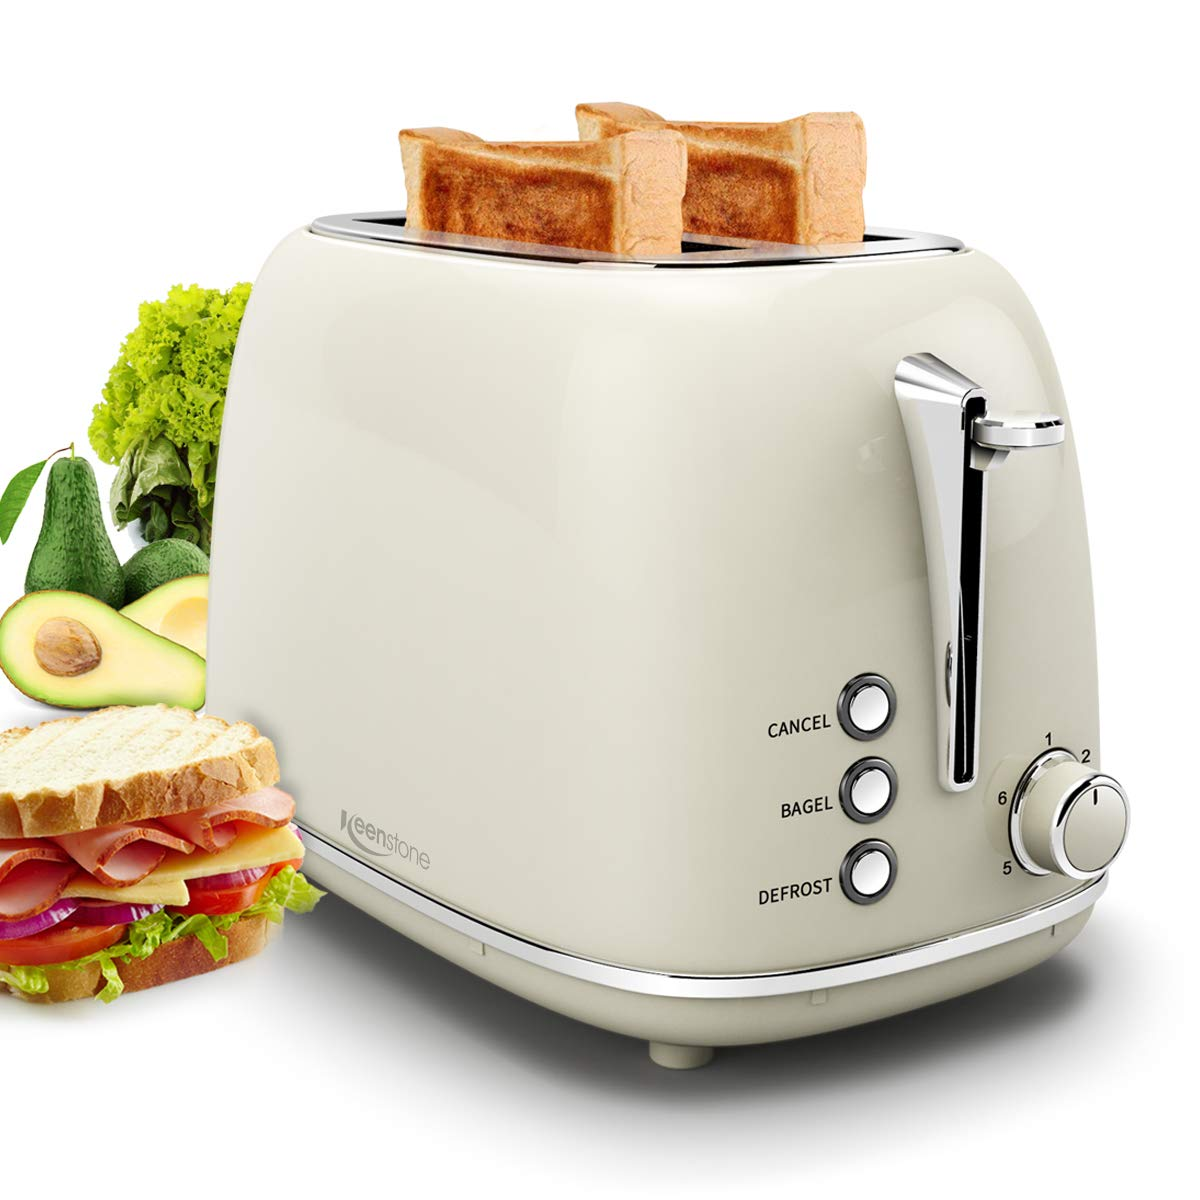 2 Slice Toaster, Compact Bread Toasters with 6 Browning Settings, 1.5 In Extra Wide Slots, Stainless Steel Housing, Bagel/Defrost/Cancel Function, Removable Crumb Tray, 825W for Breakfast Bread -Beige by Keenstone